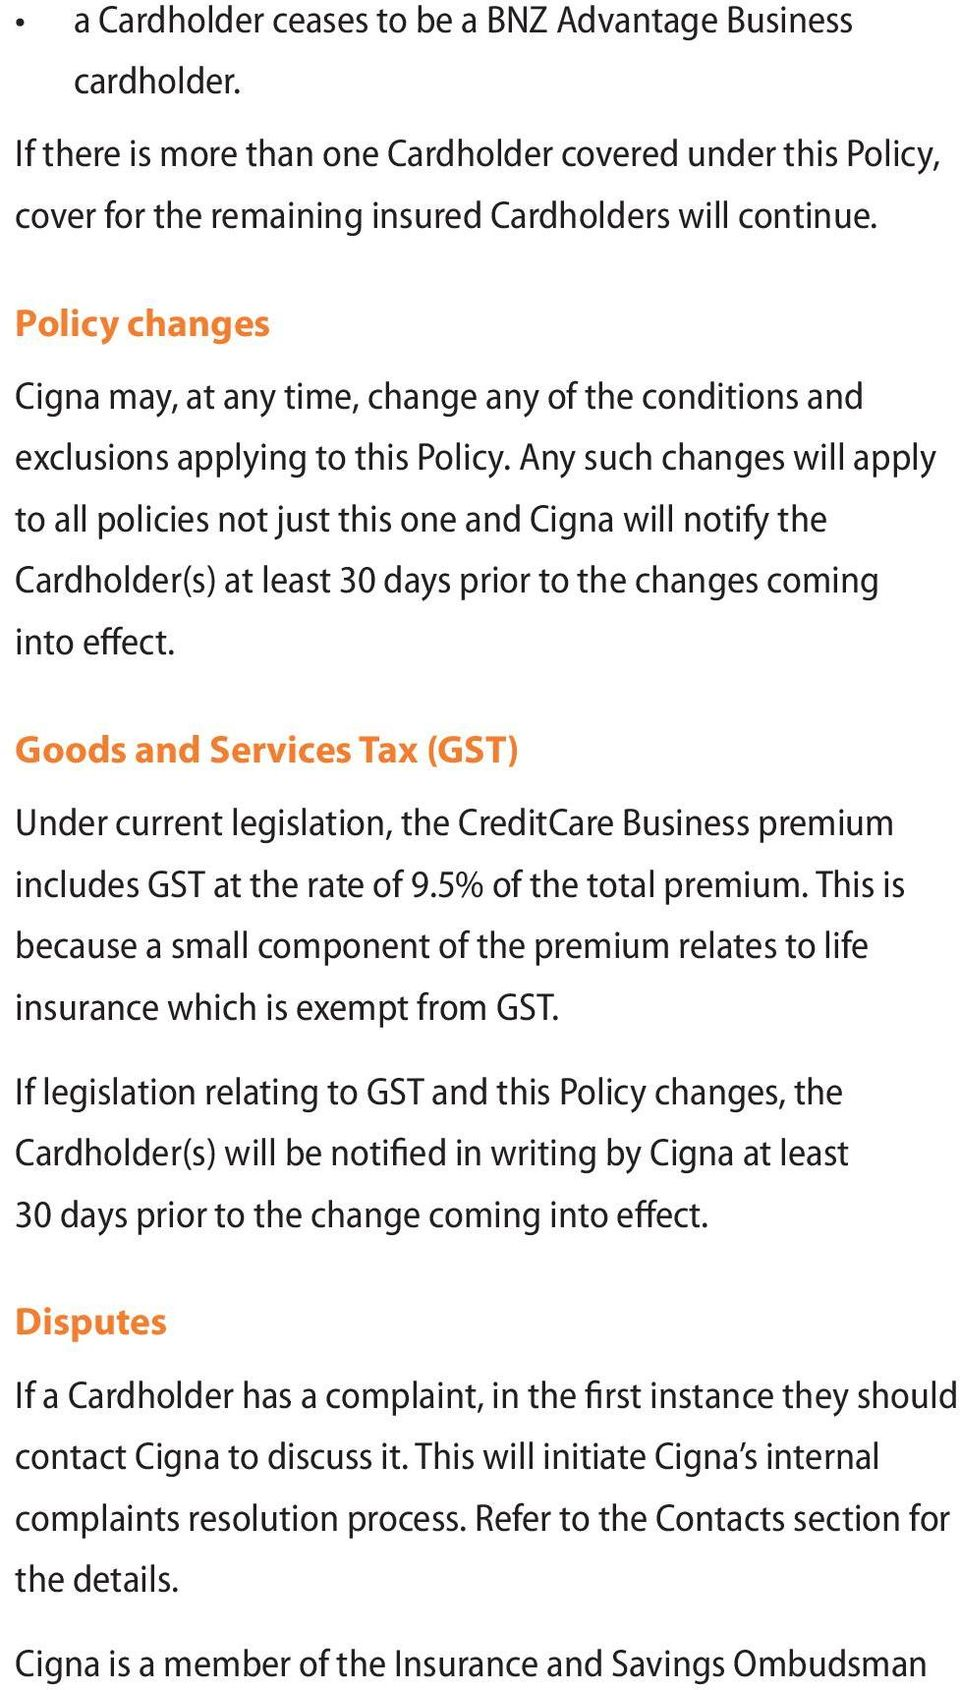 Any such changes will apply to all policies not just this one and Cigna will notify the Cardholder(s) at least 30 days prior to the changes coming into effect.